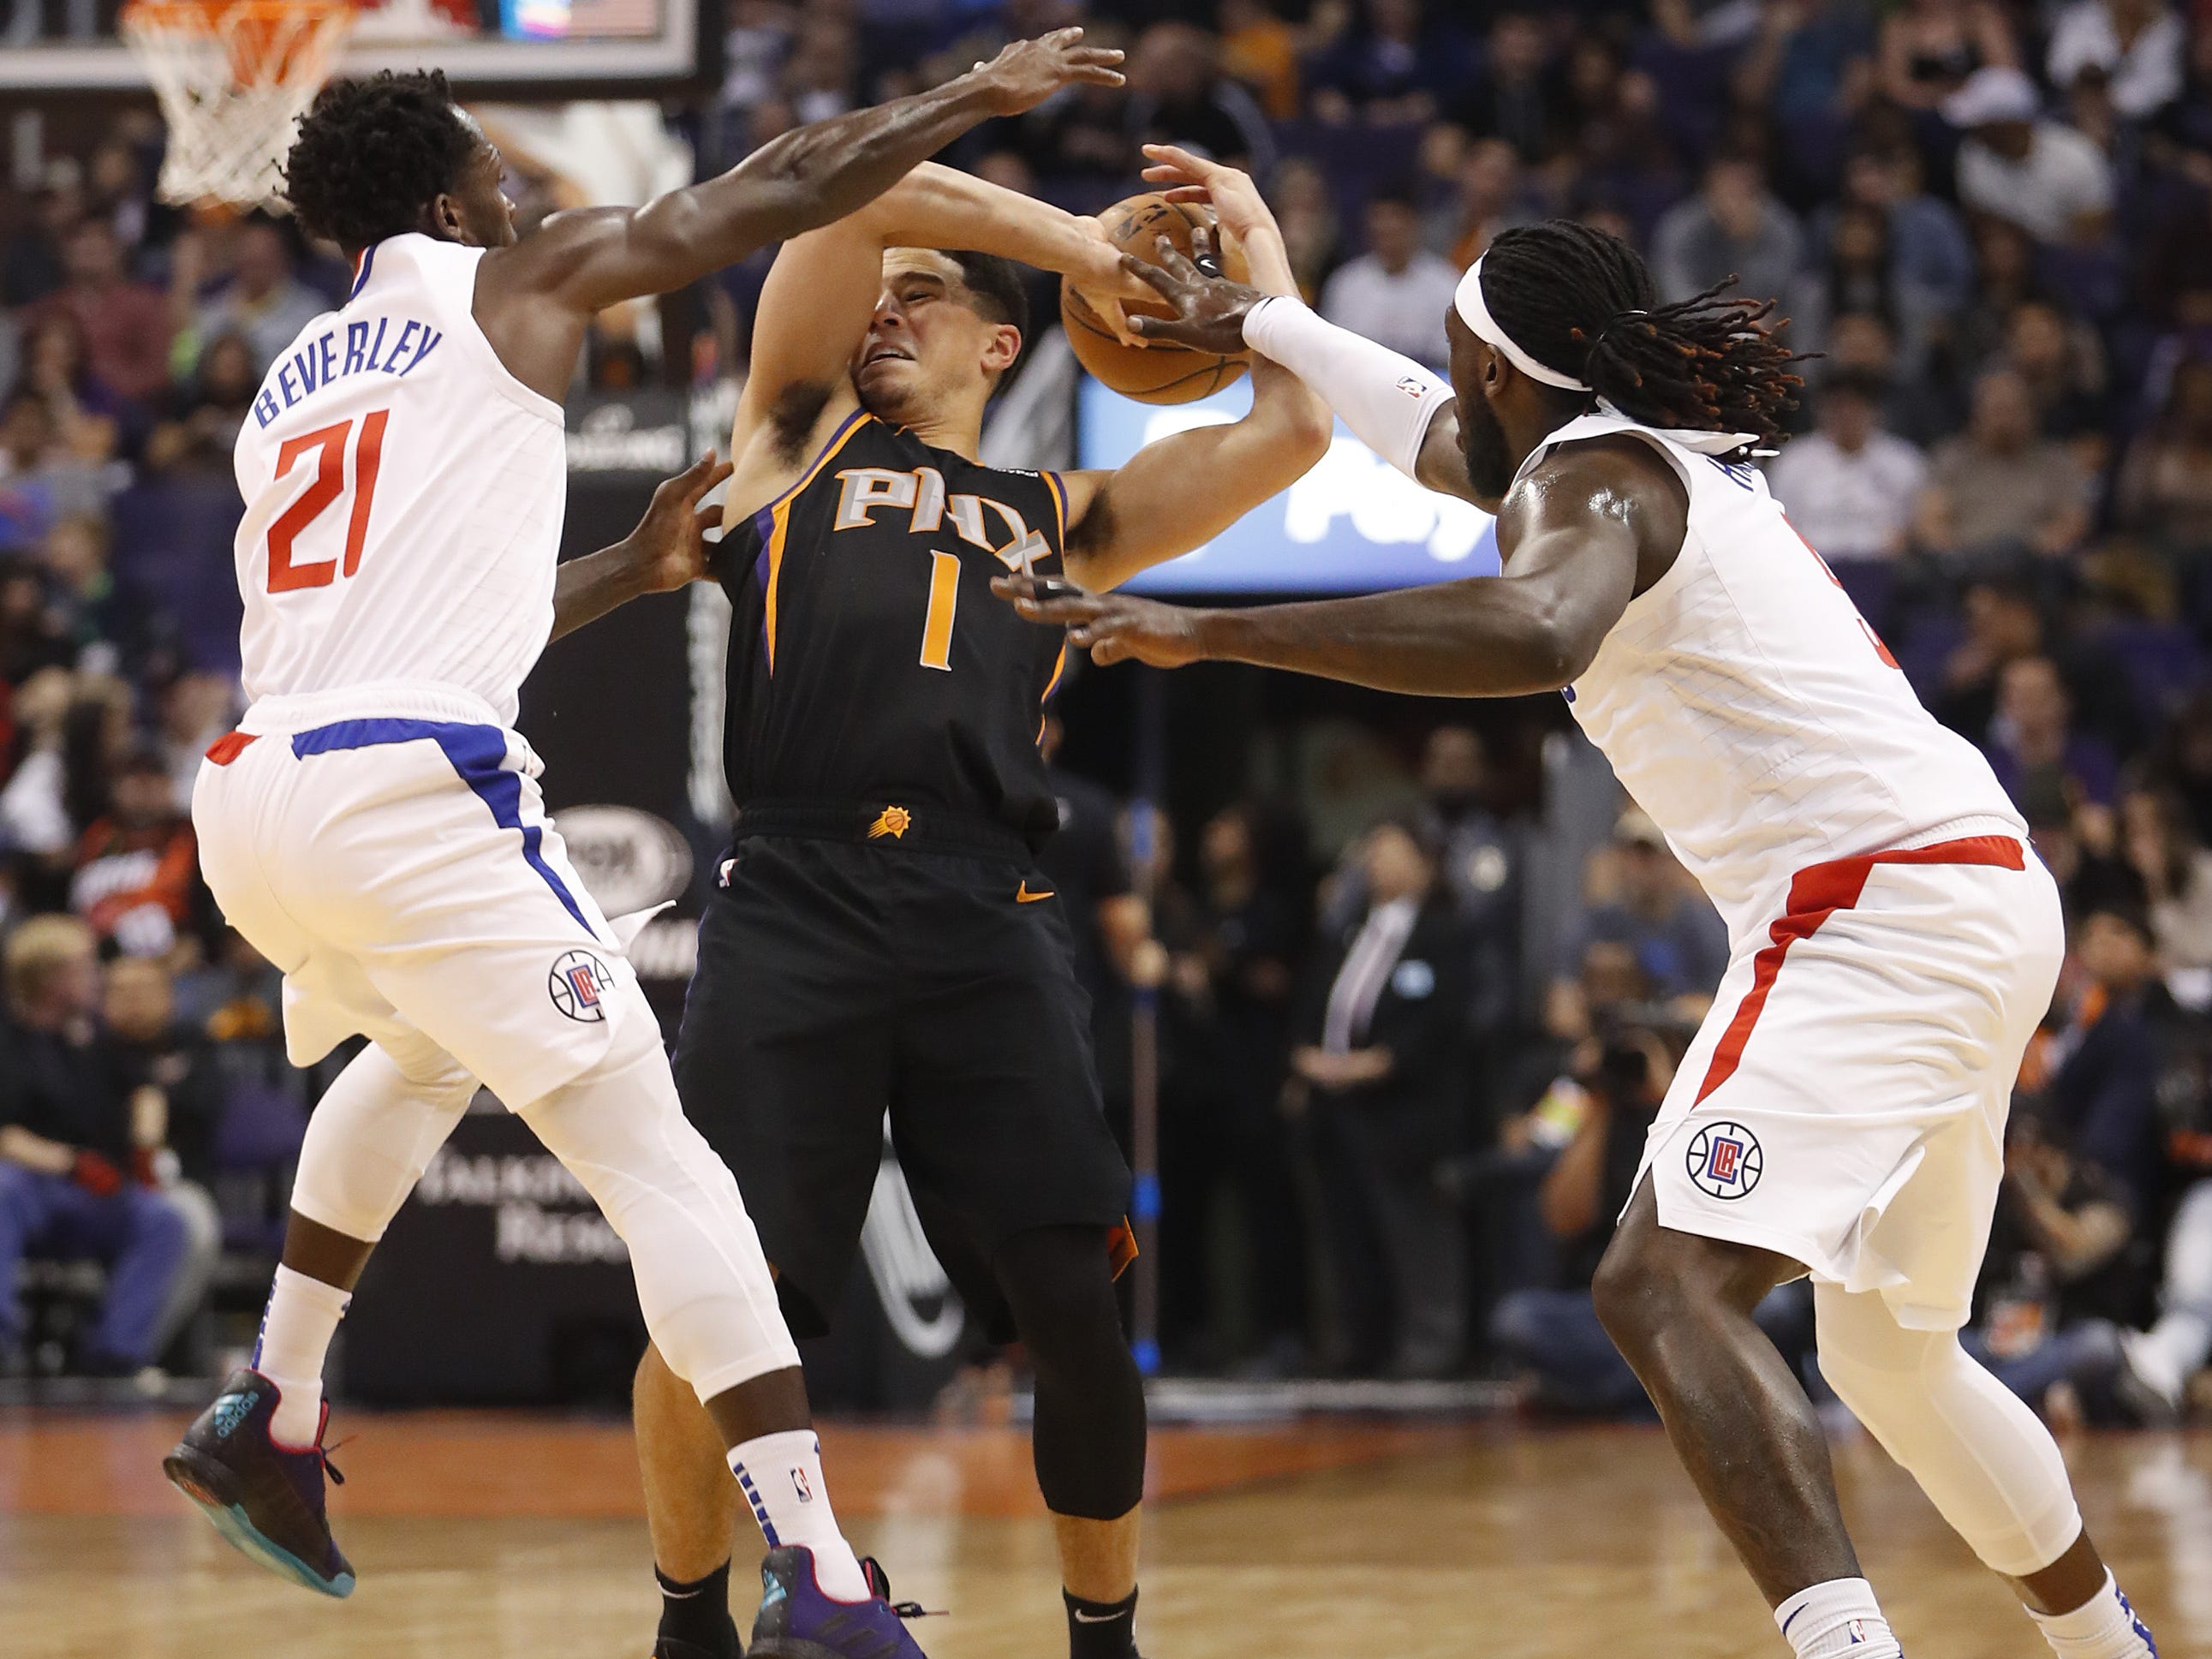 Clippers' Patrick Beverley (21) and Montrezl Harrell (5) force a steal on Suns' Devin Booker (1) during the first half at Talking Stick Resort Arena in Phoenix, Ariz. on January 4, 2019.